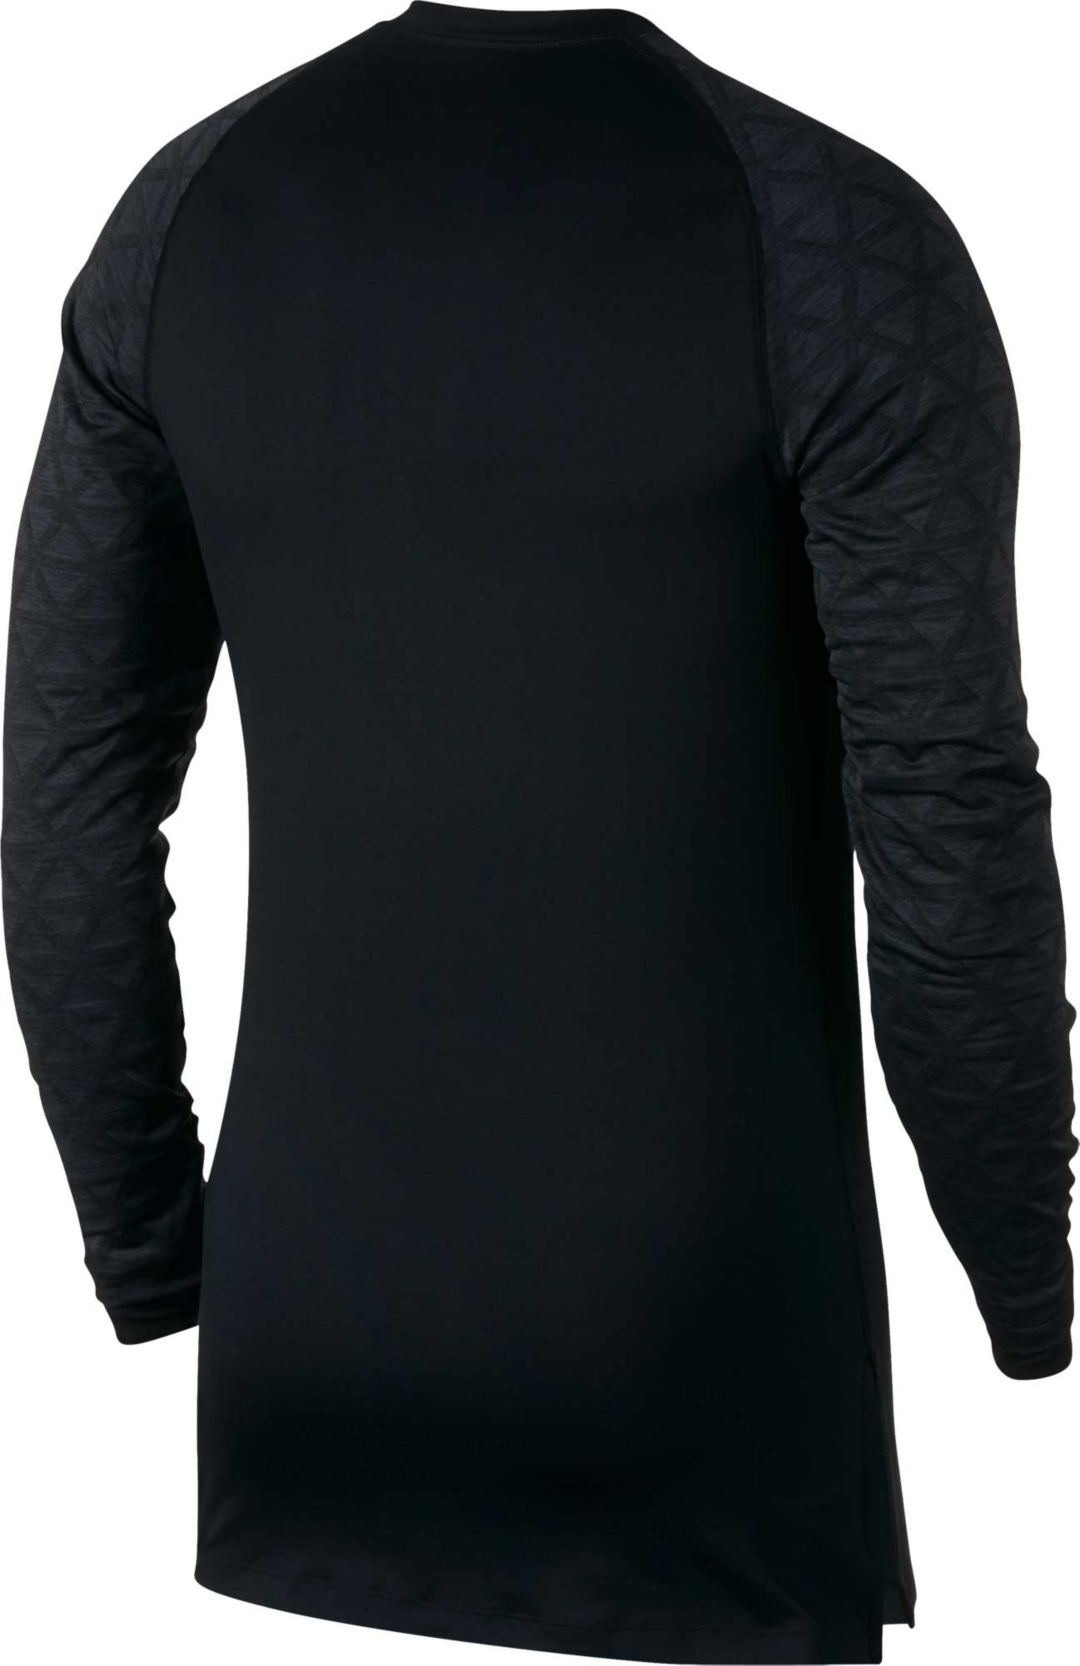 6322ac2fc Nike Men's Pro Therma Utility Long Sleeve Shirt. noImageFound. Previous. 1.  2